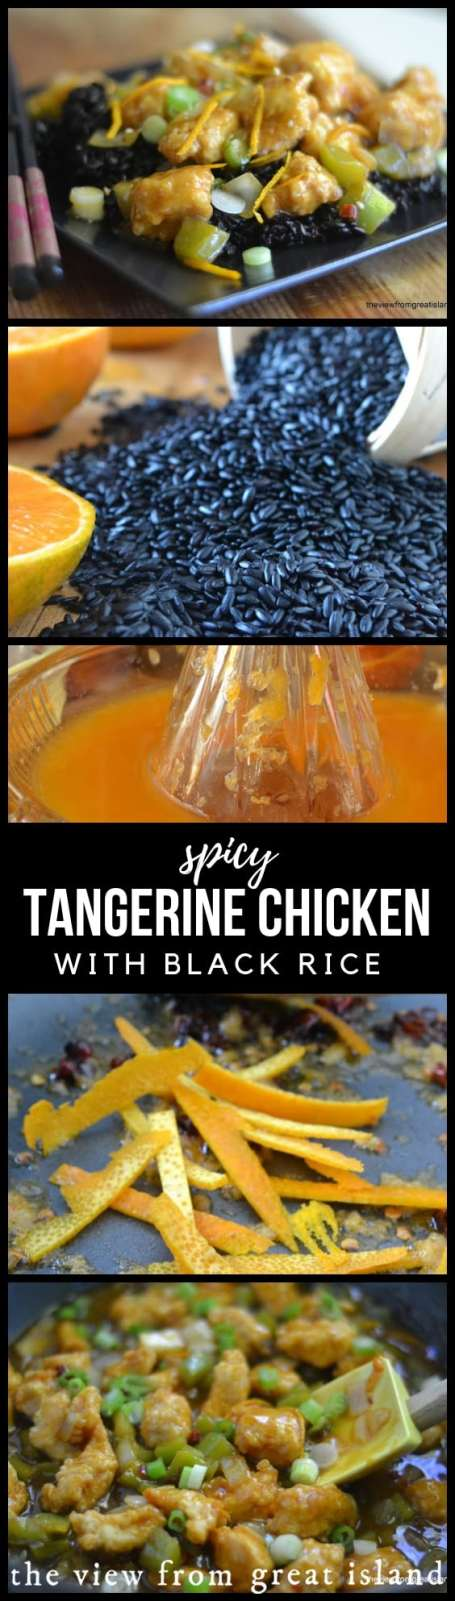 Spicy Tangerine Chicken with Black Rice is an authentic Asian recipe with fabulous flavor, and the black rice makes it extra special! #chicken #Asian #chinese #takeout #blackrice #stirfry #healthy #tangerine #dinner #easy #recipe #authentic